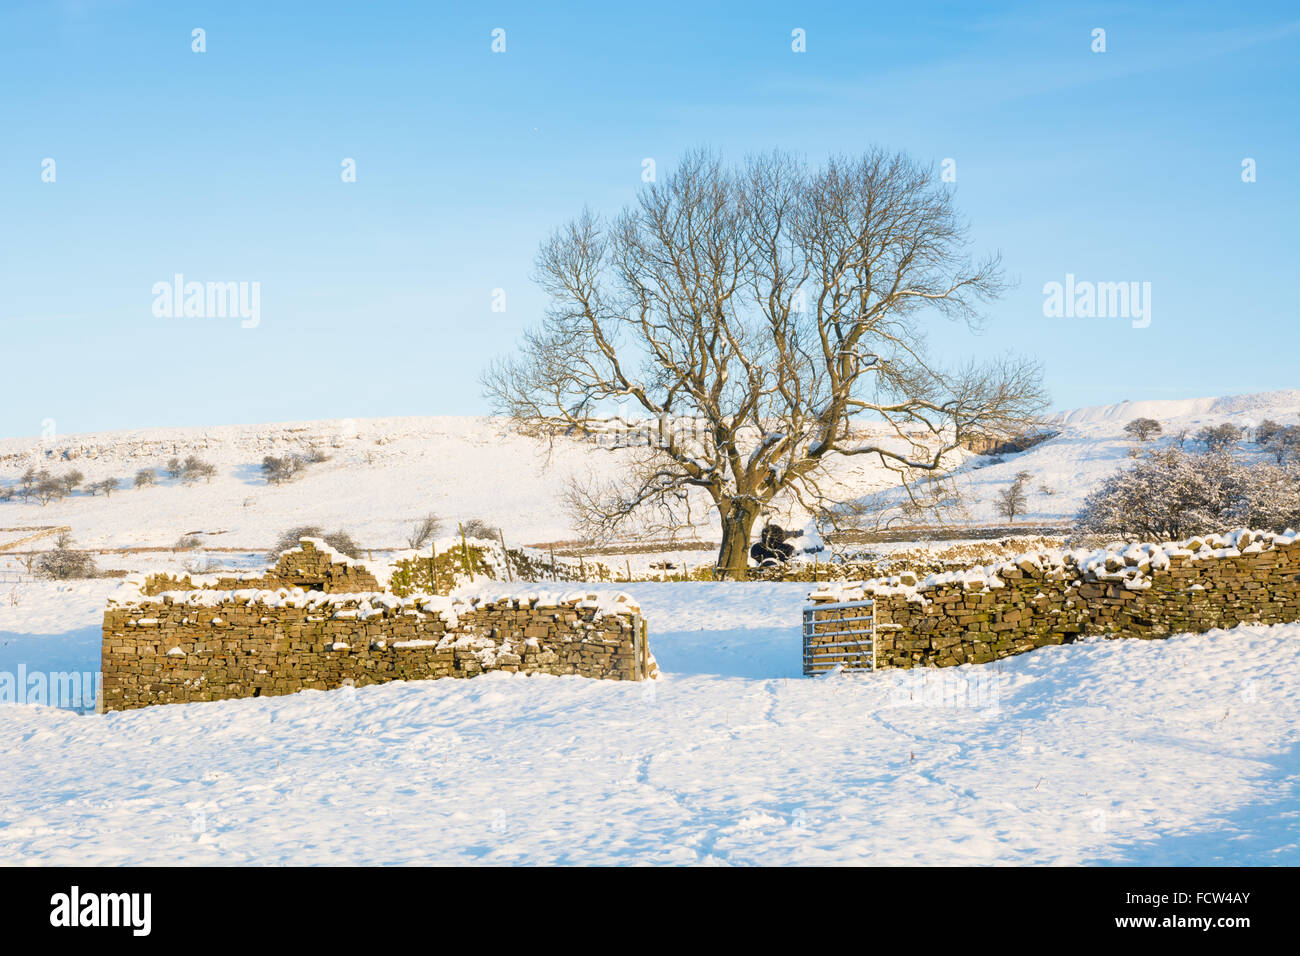 Tree and drystone walls in the snow - Stock Image